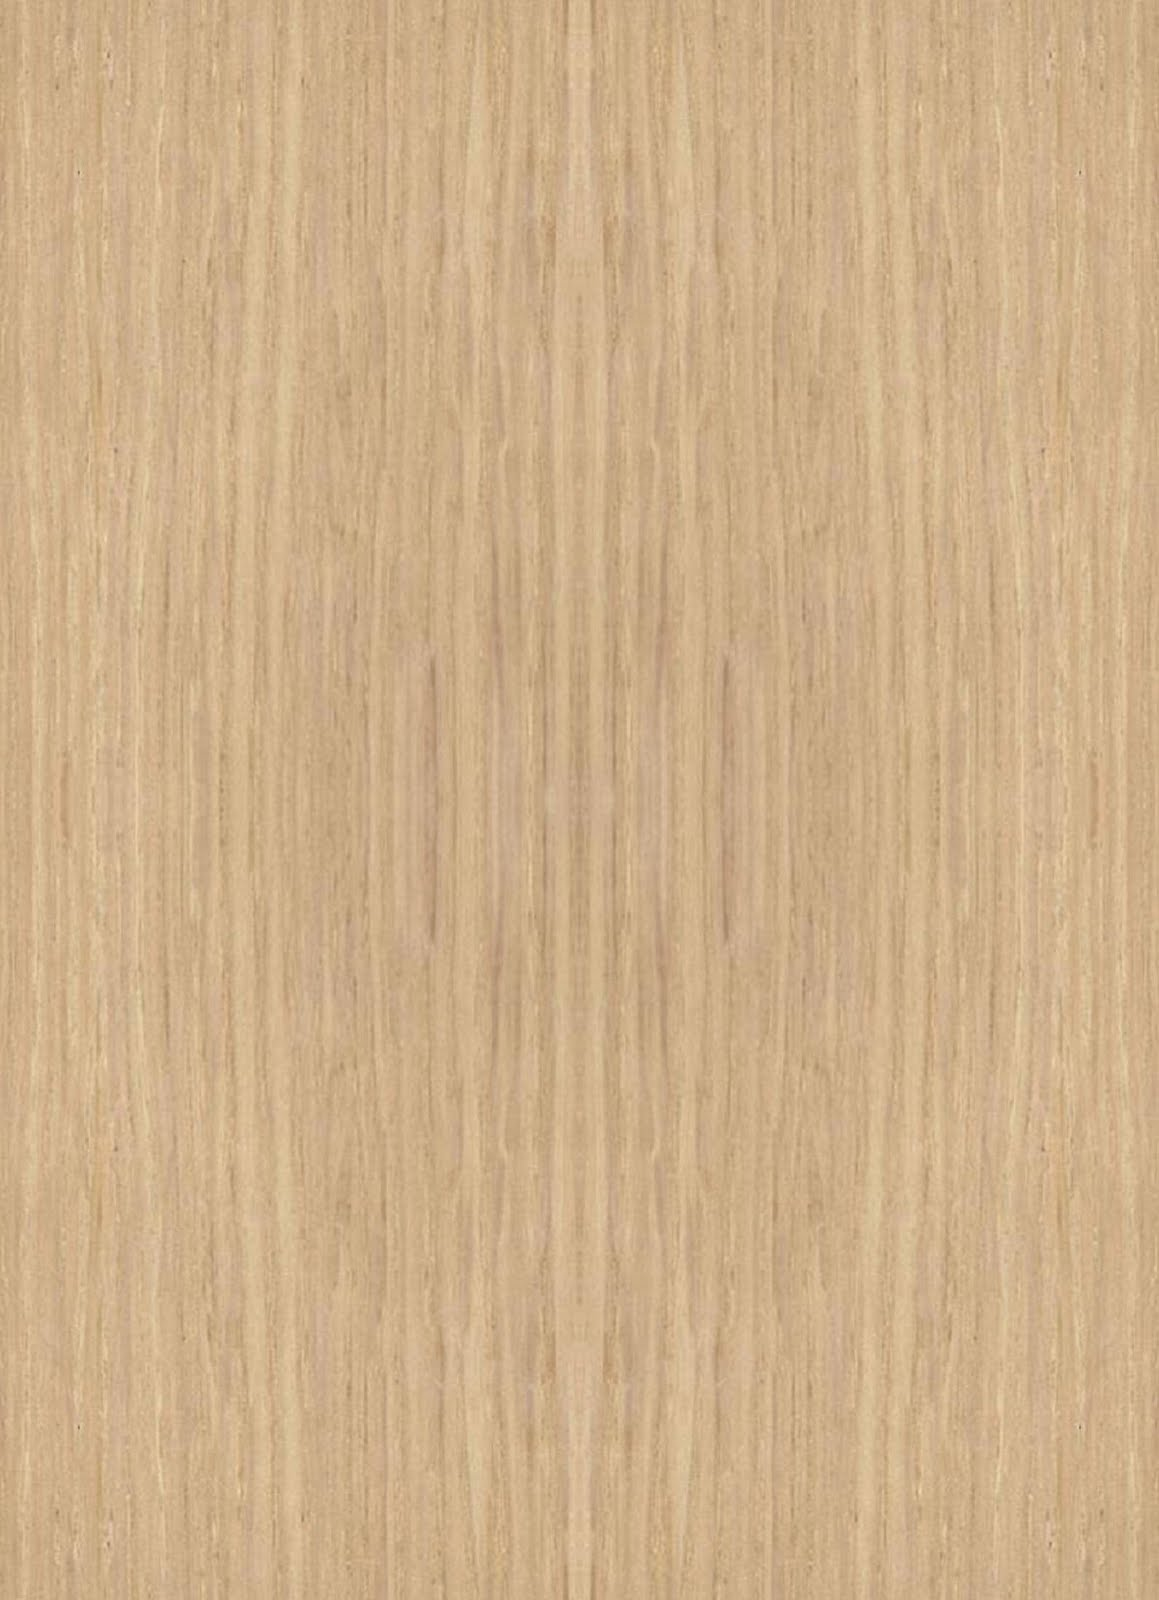 Architecture d veneer white oak